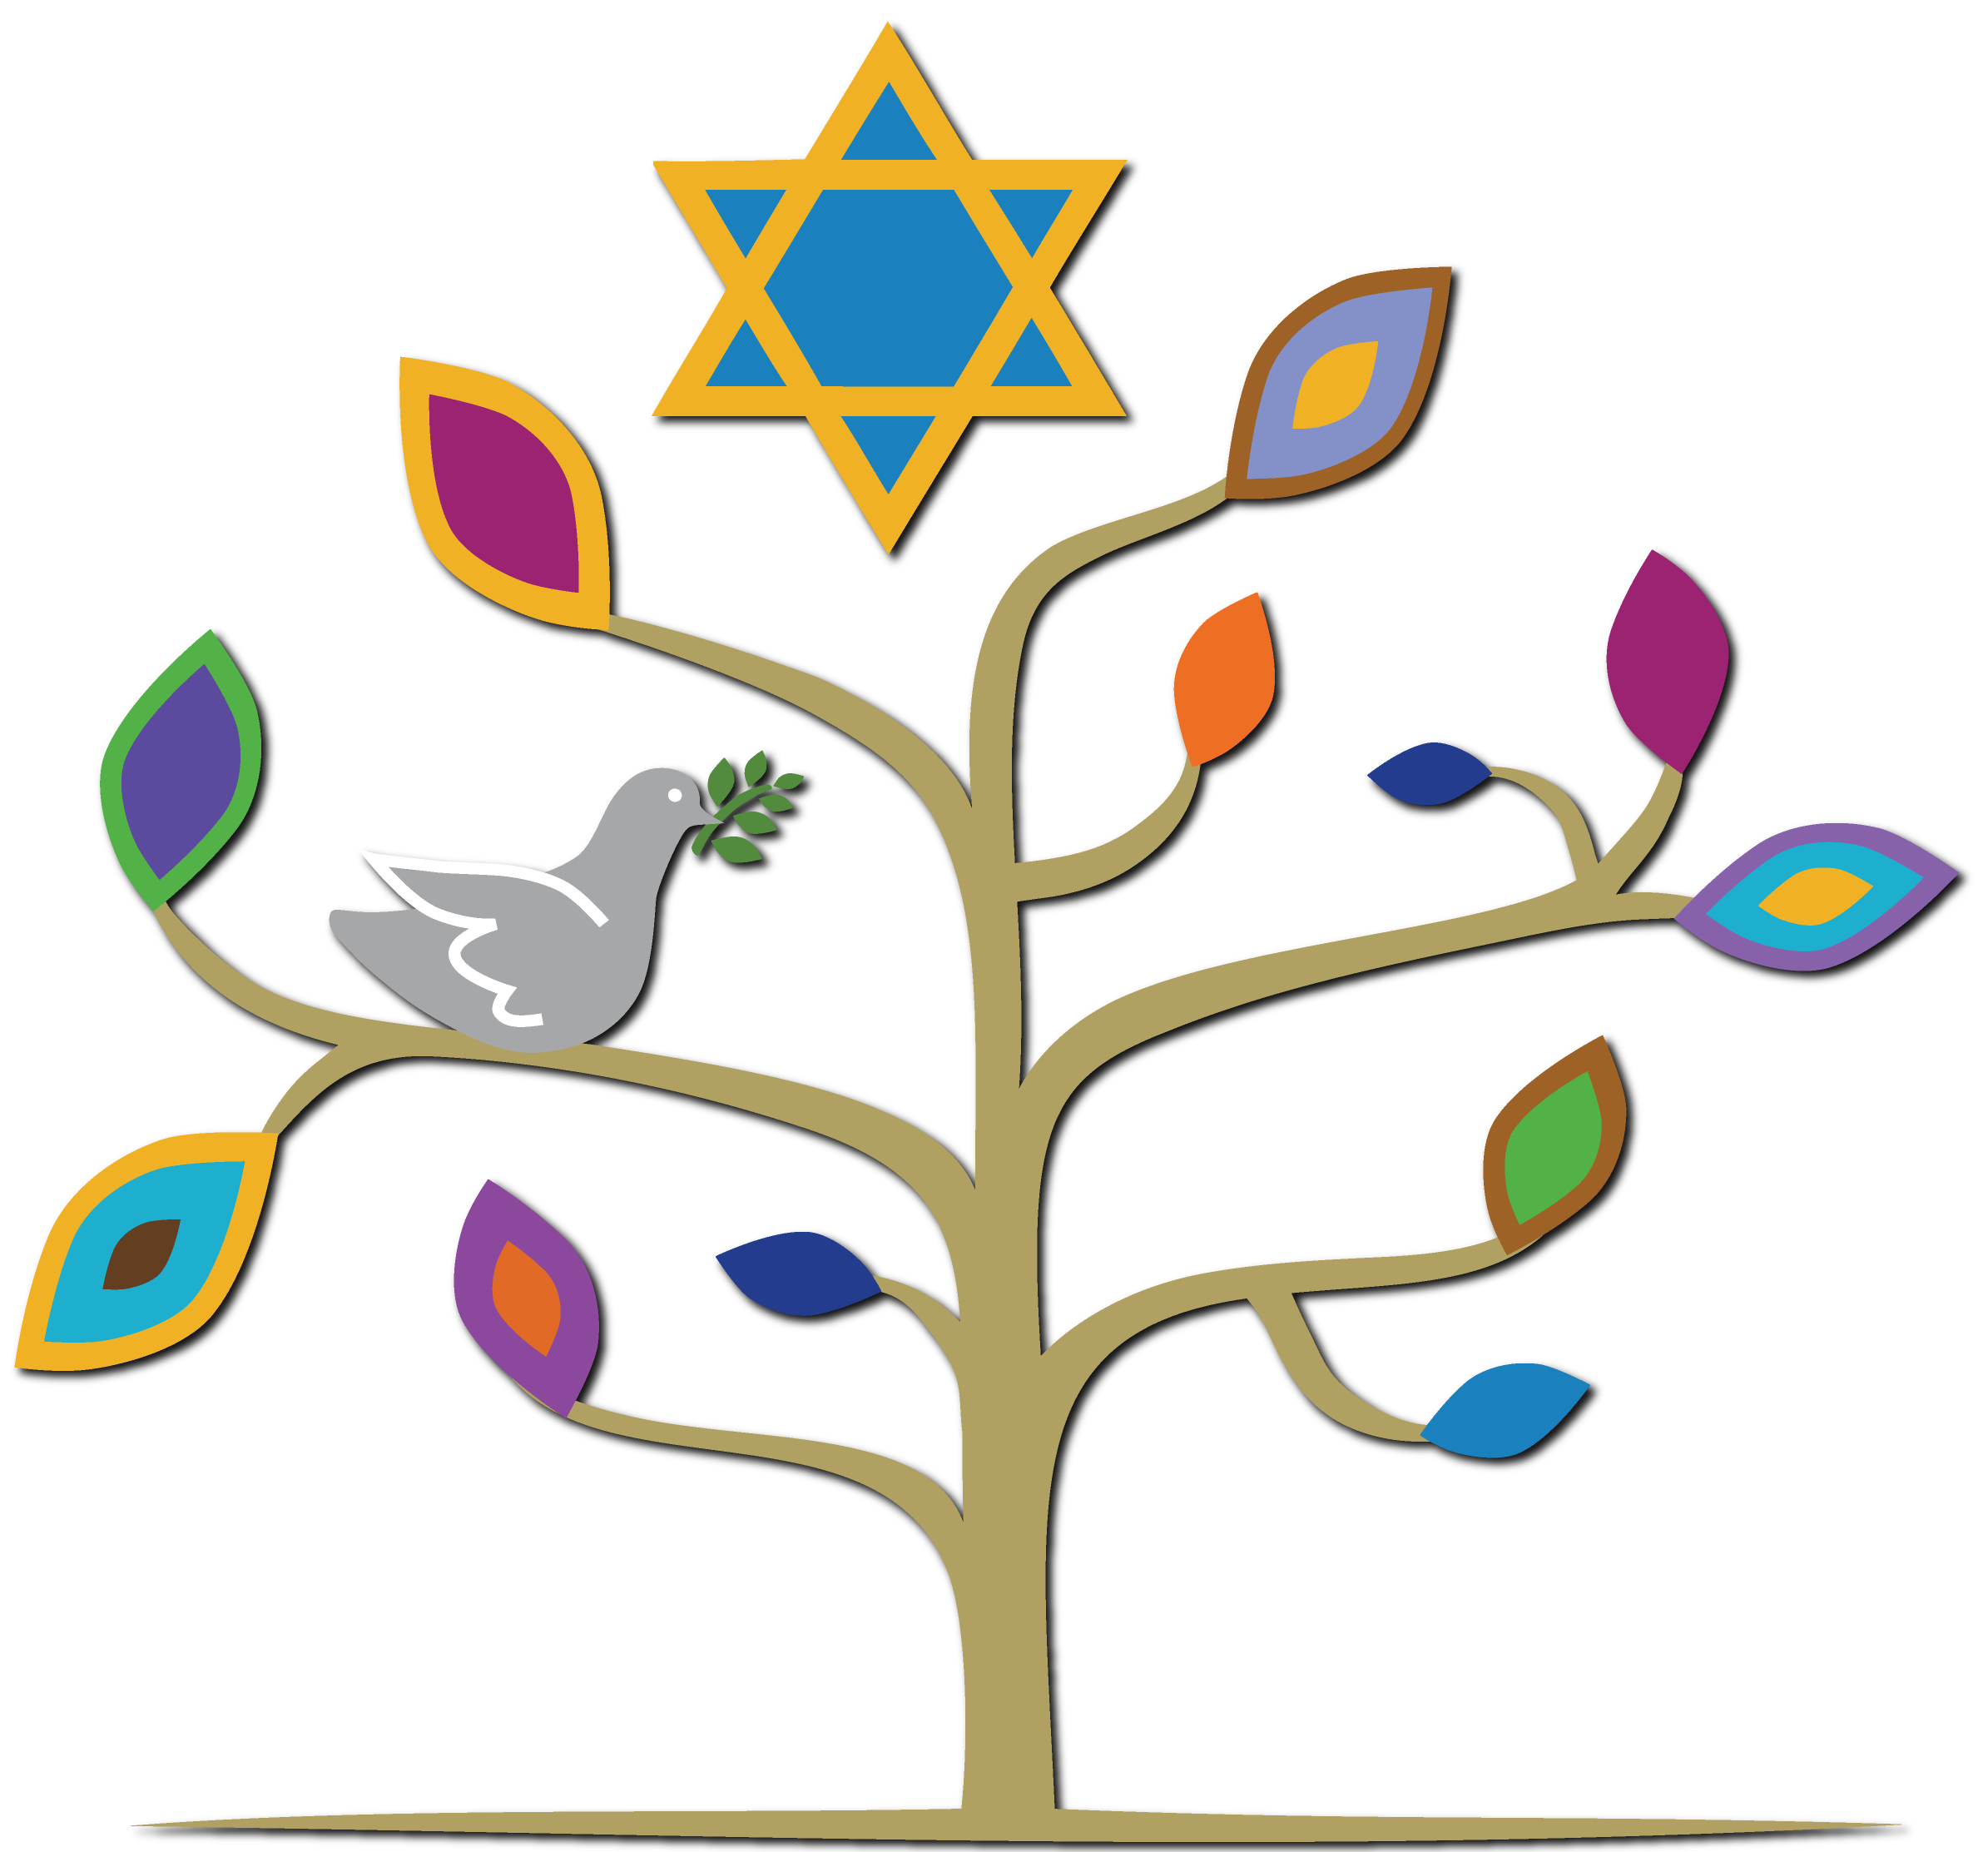 Exploring Judaism Class:  This class will be held on four consecutive Mondays: April 15th; April 22nd; April 29th; May 6th from 6:30 – 8:30 p.m. This class is for anyone who is interested in learning about Judaism: Jews wishing to reconnect with their Jewish roots; interfaith couples; adult children and grandchildren of interfaith couples, in-laws of Jews; interested individuals from various faith and cultural backgrounds; or those interested in conversion. The classes serve anyone seeking more knowledge about Judaism as a good beginner course.